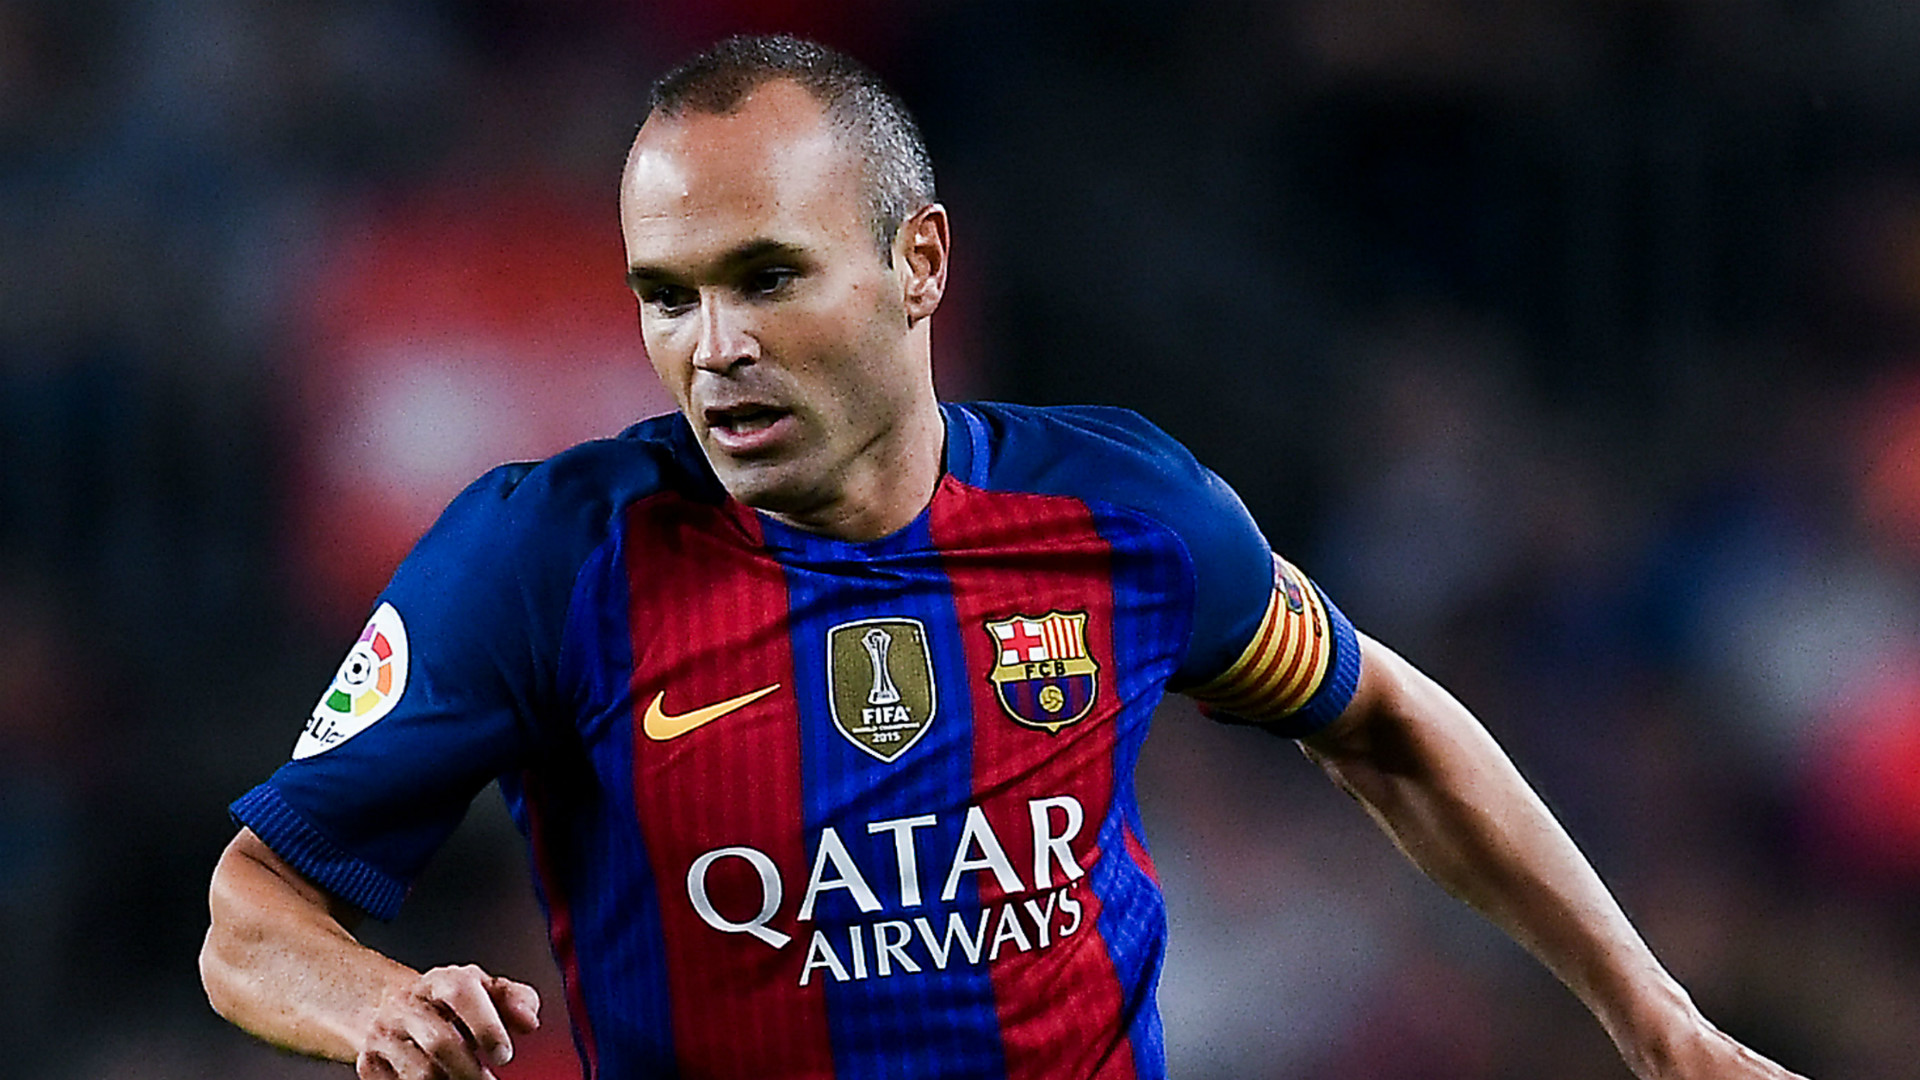 UEFA Team of the Year Andres Iniesta